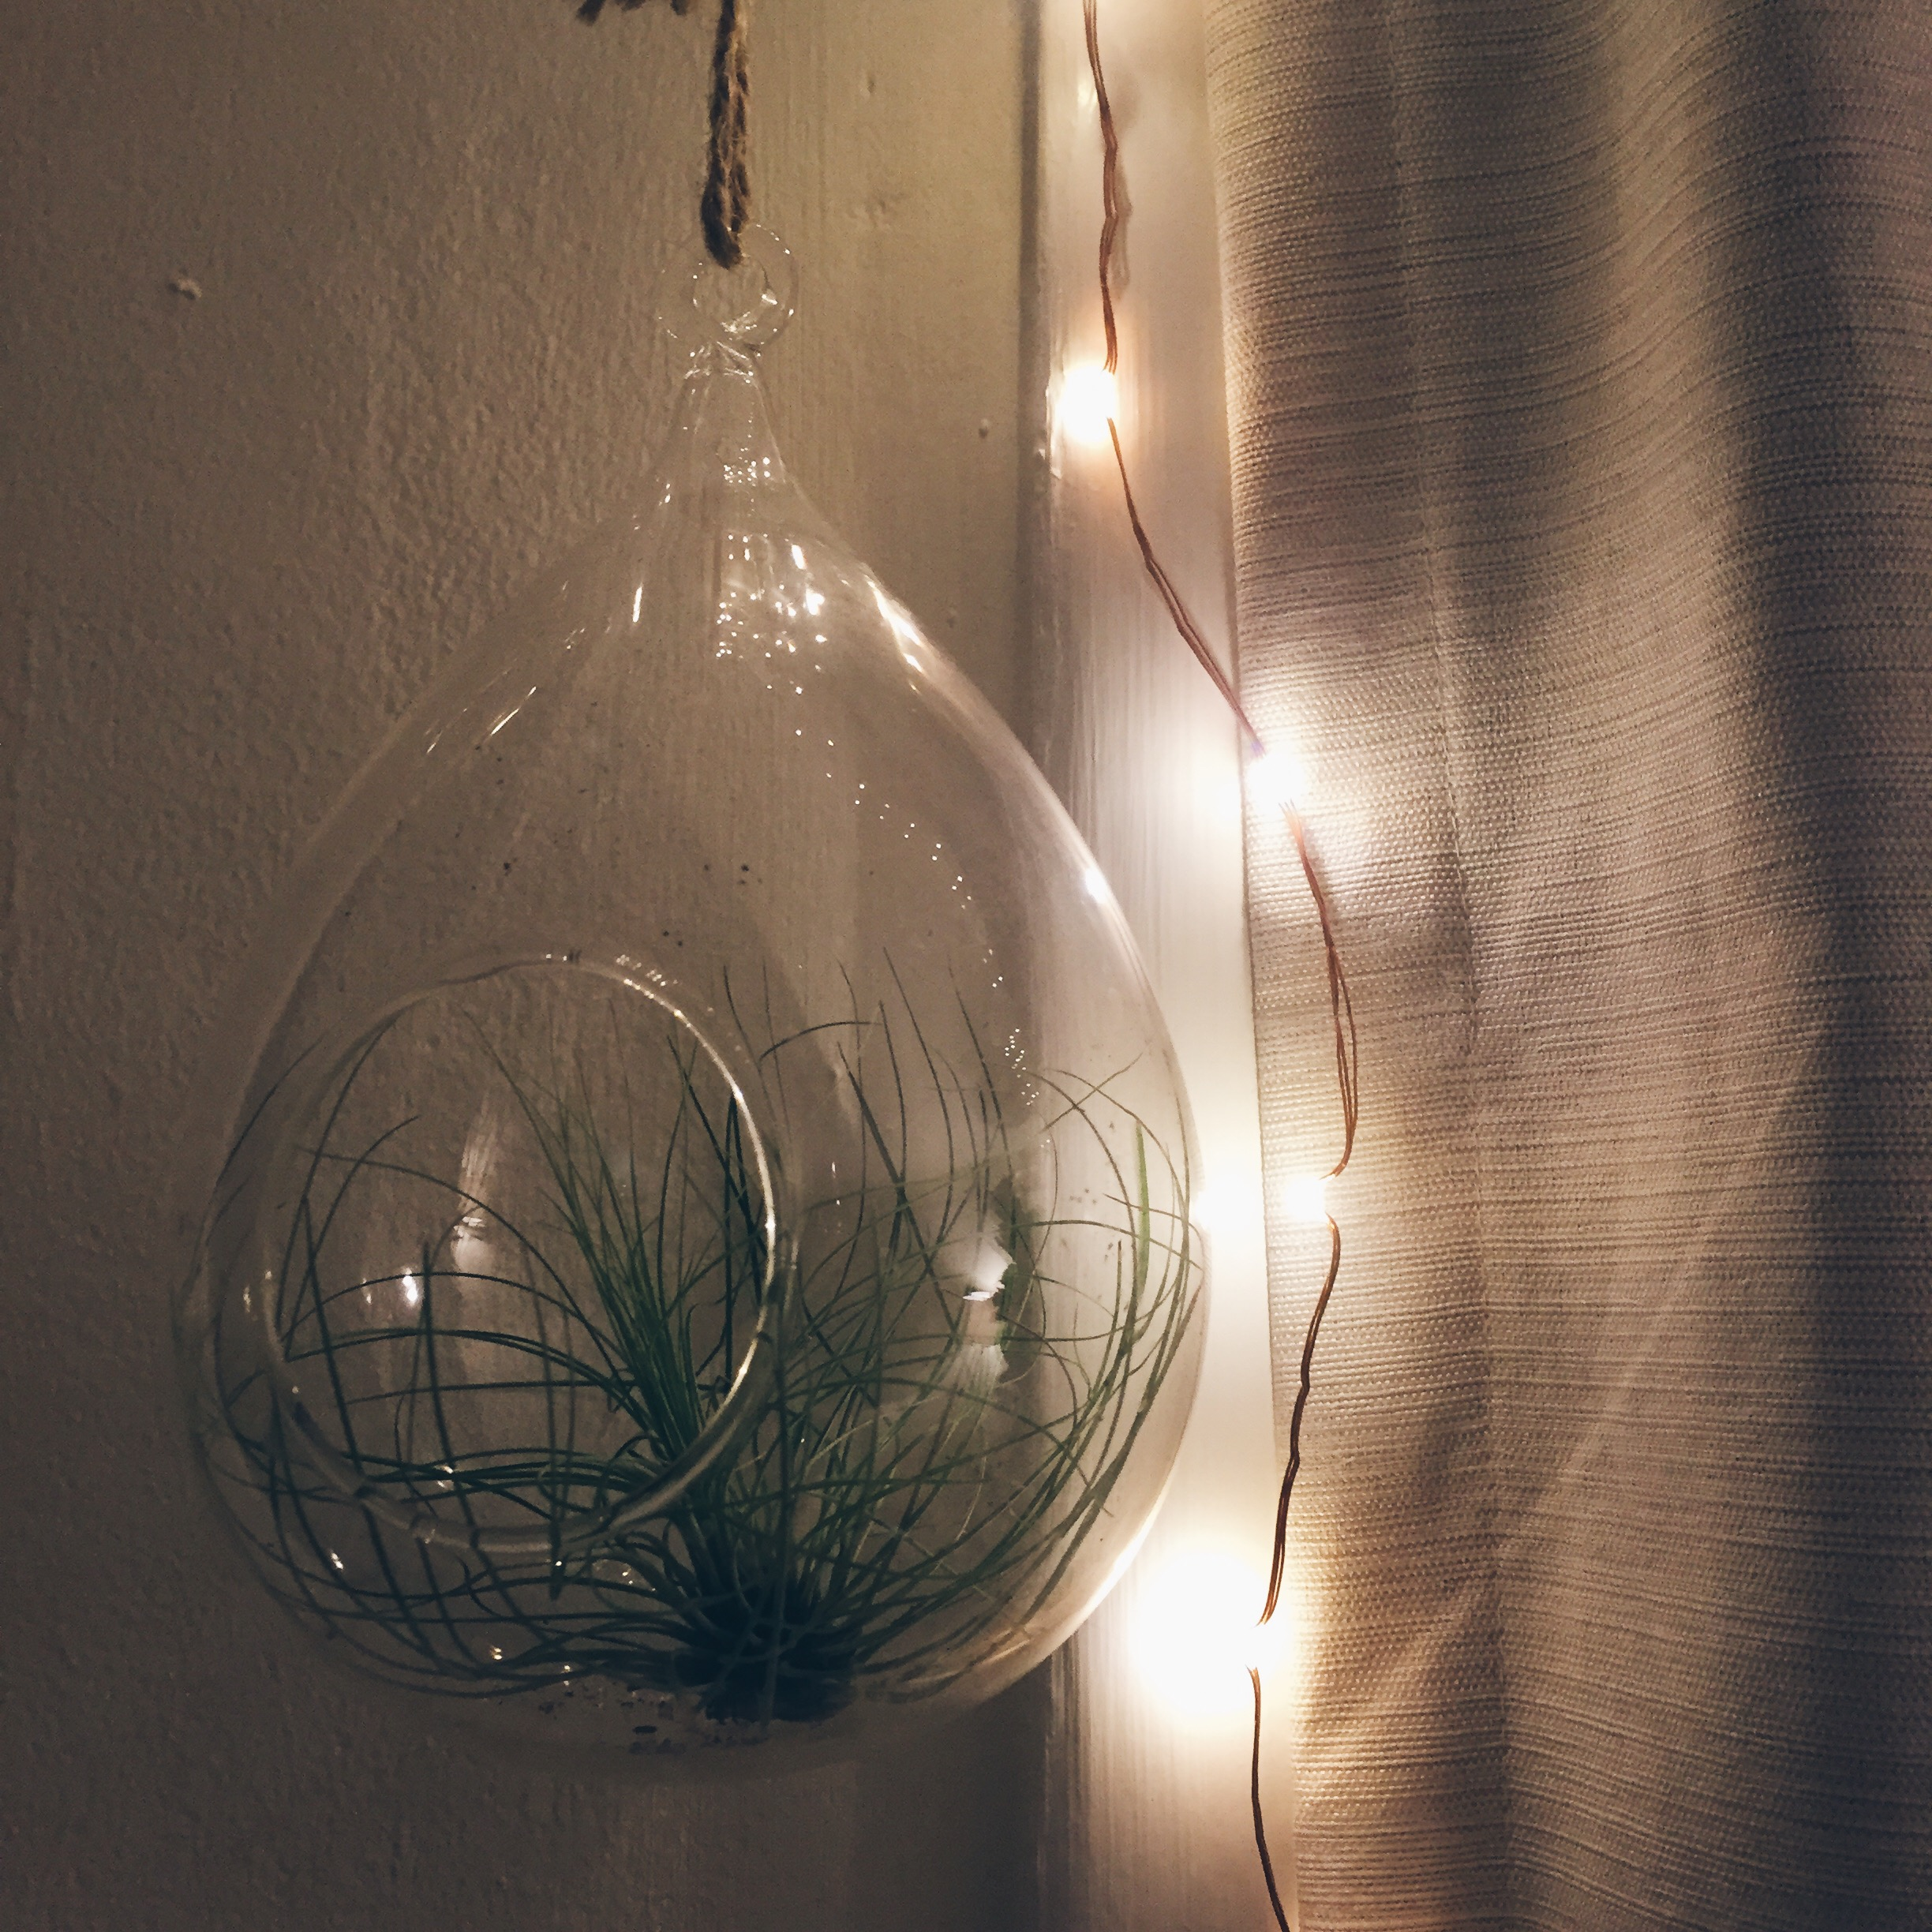 These fairy lights brighten up and give any room a warm touch. If you'd like, you can find them  here.